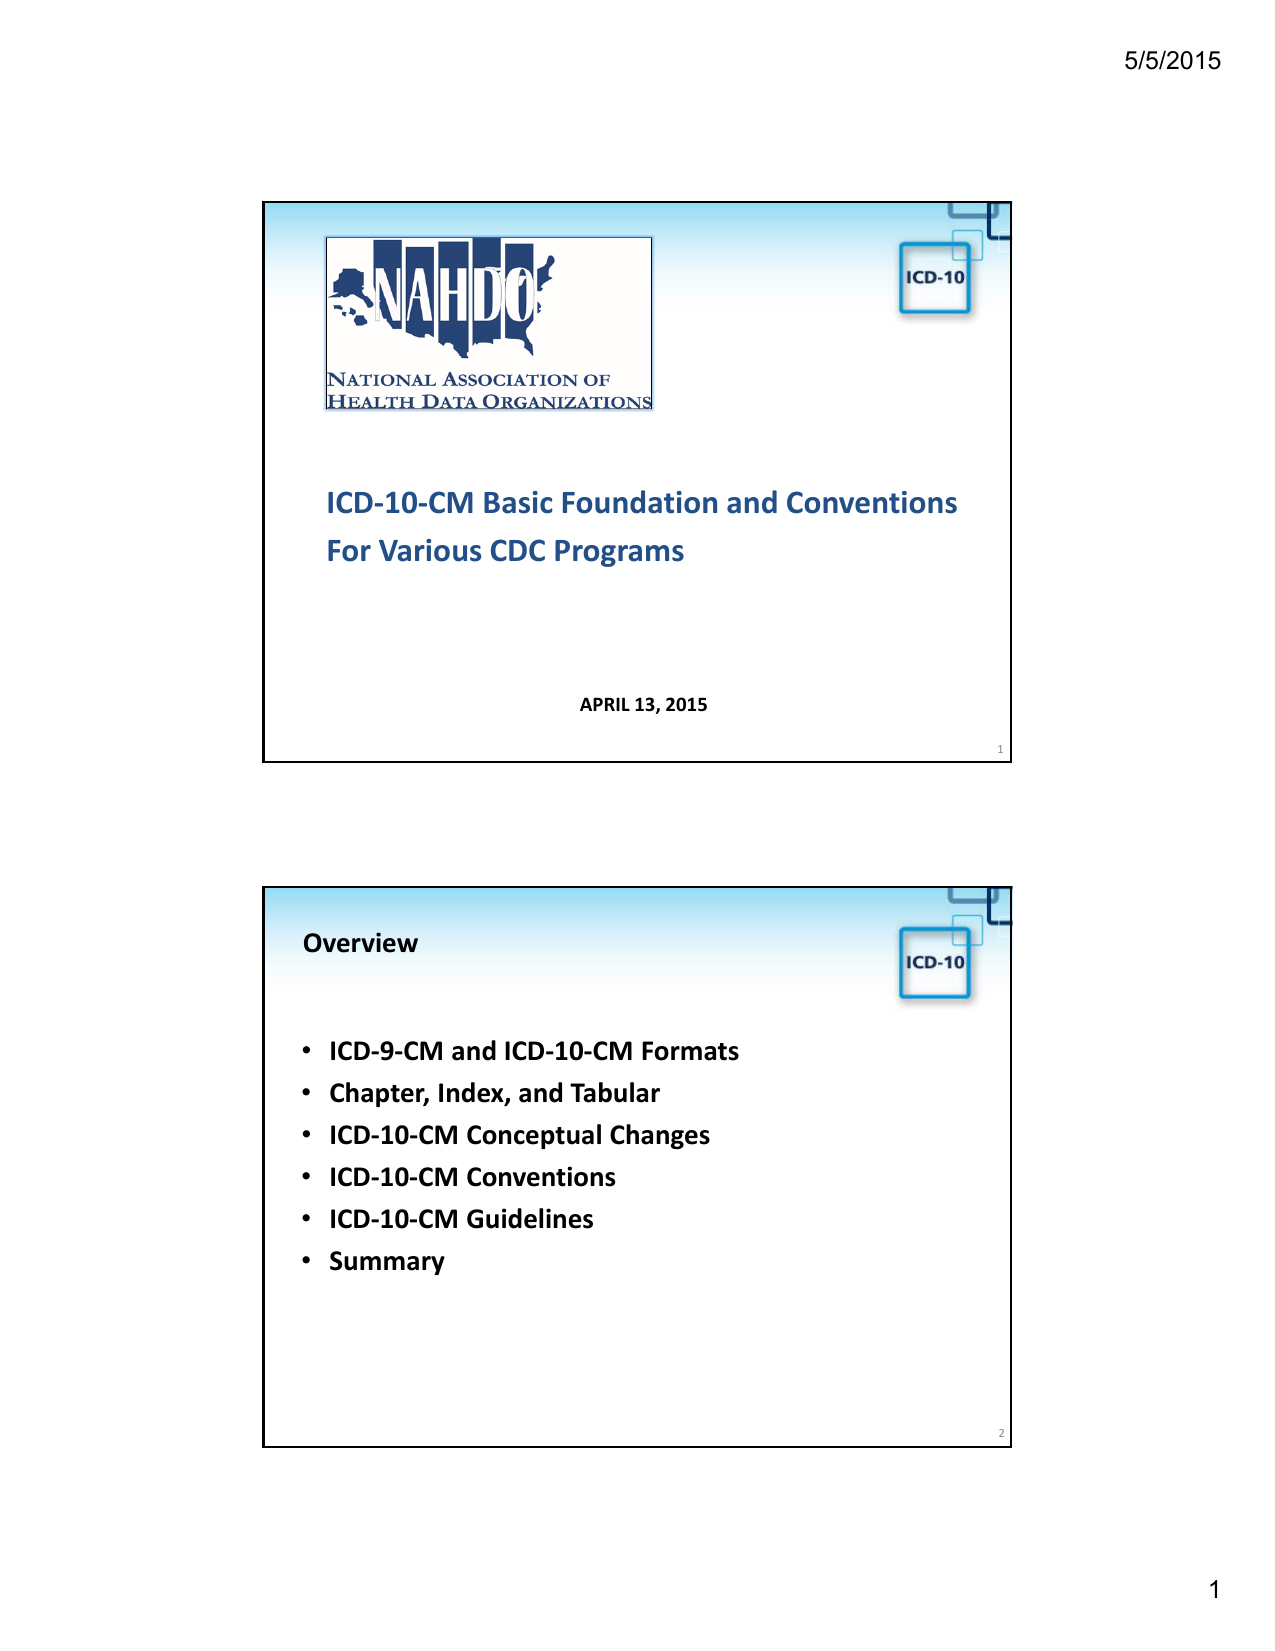 ICD-10-CM Basic Foundation and Conventions For